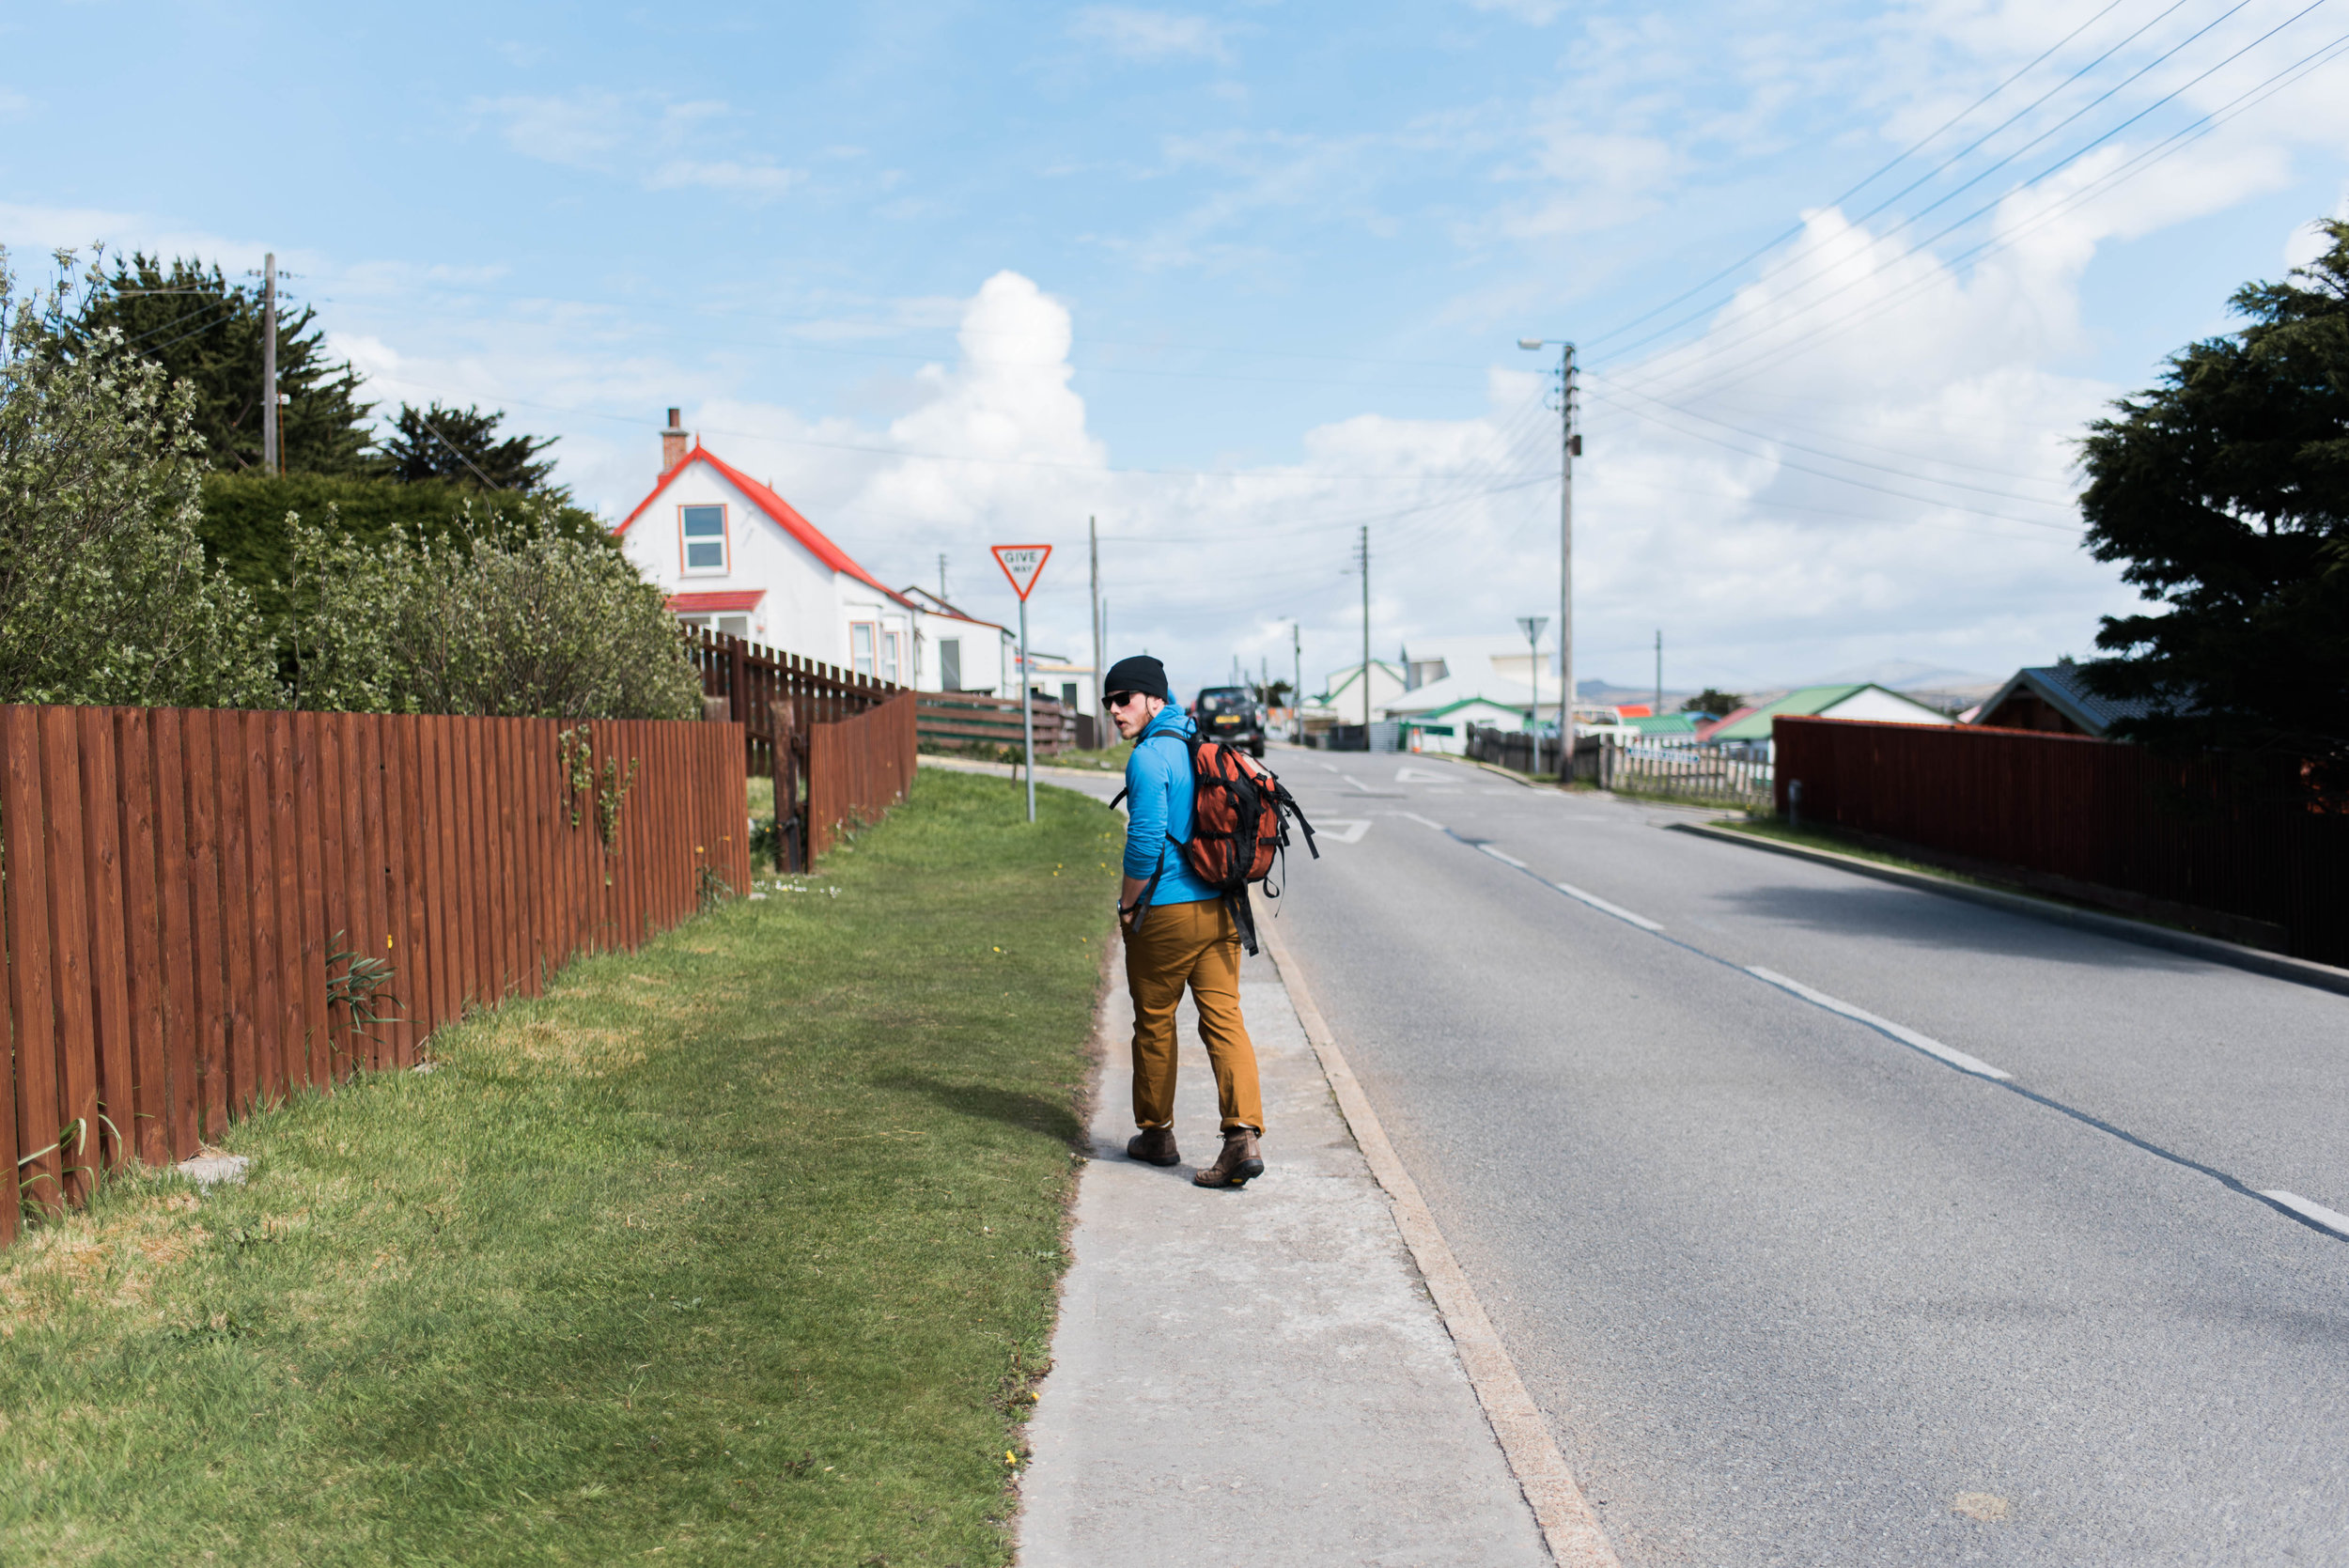 Lee on the streets of Stanley, Falkland Islands